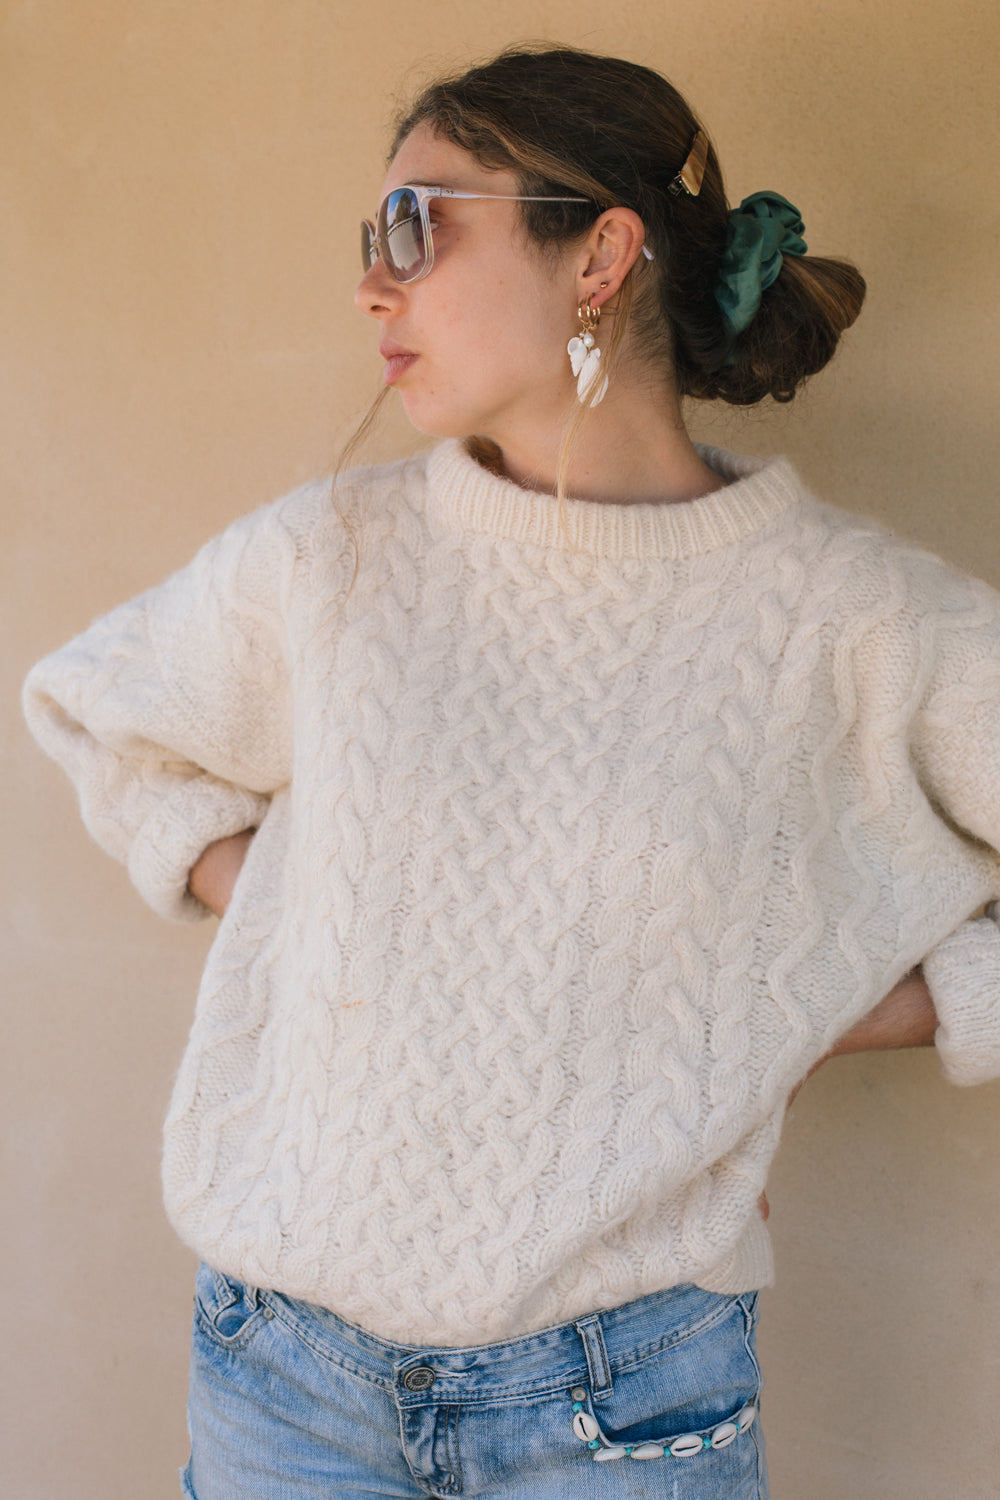 Sweater - Cream Cable Knit